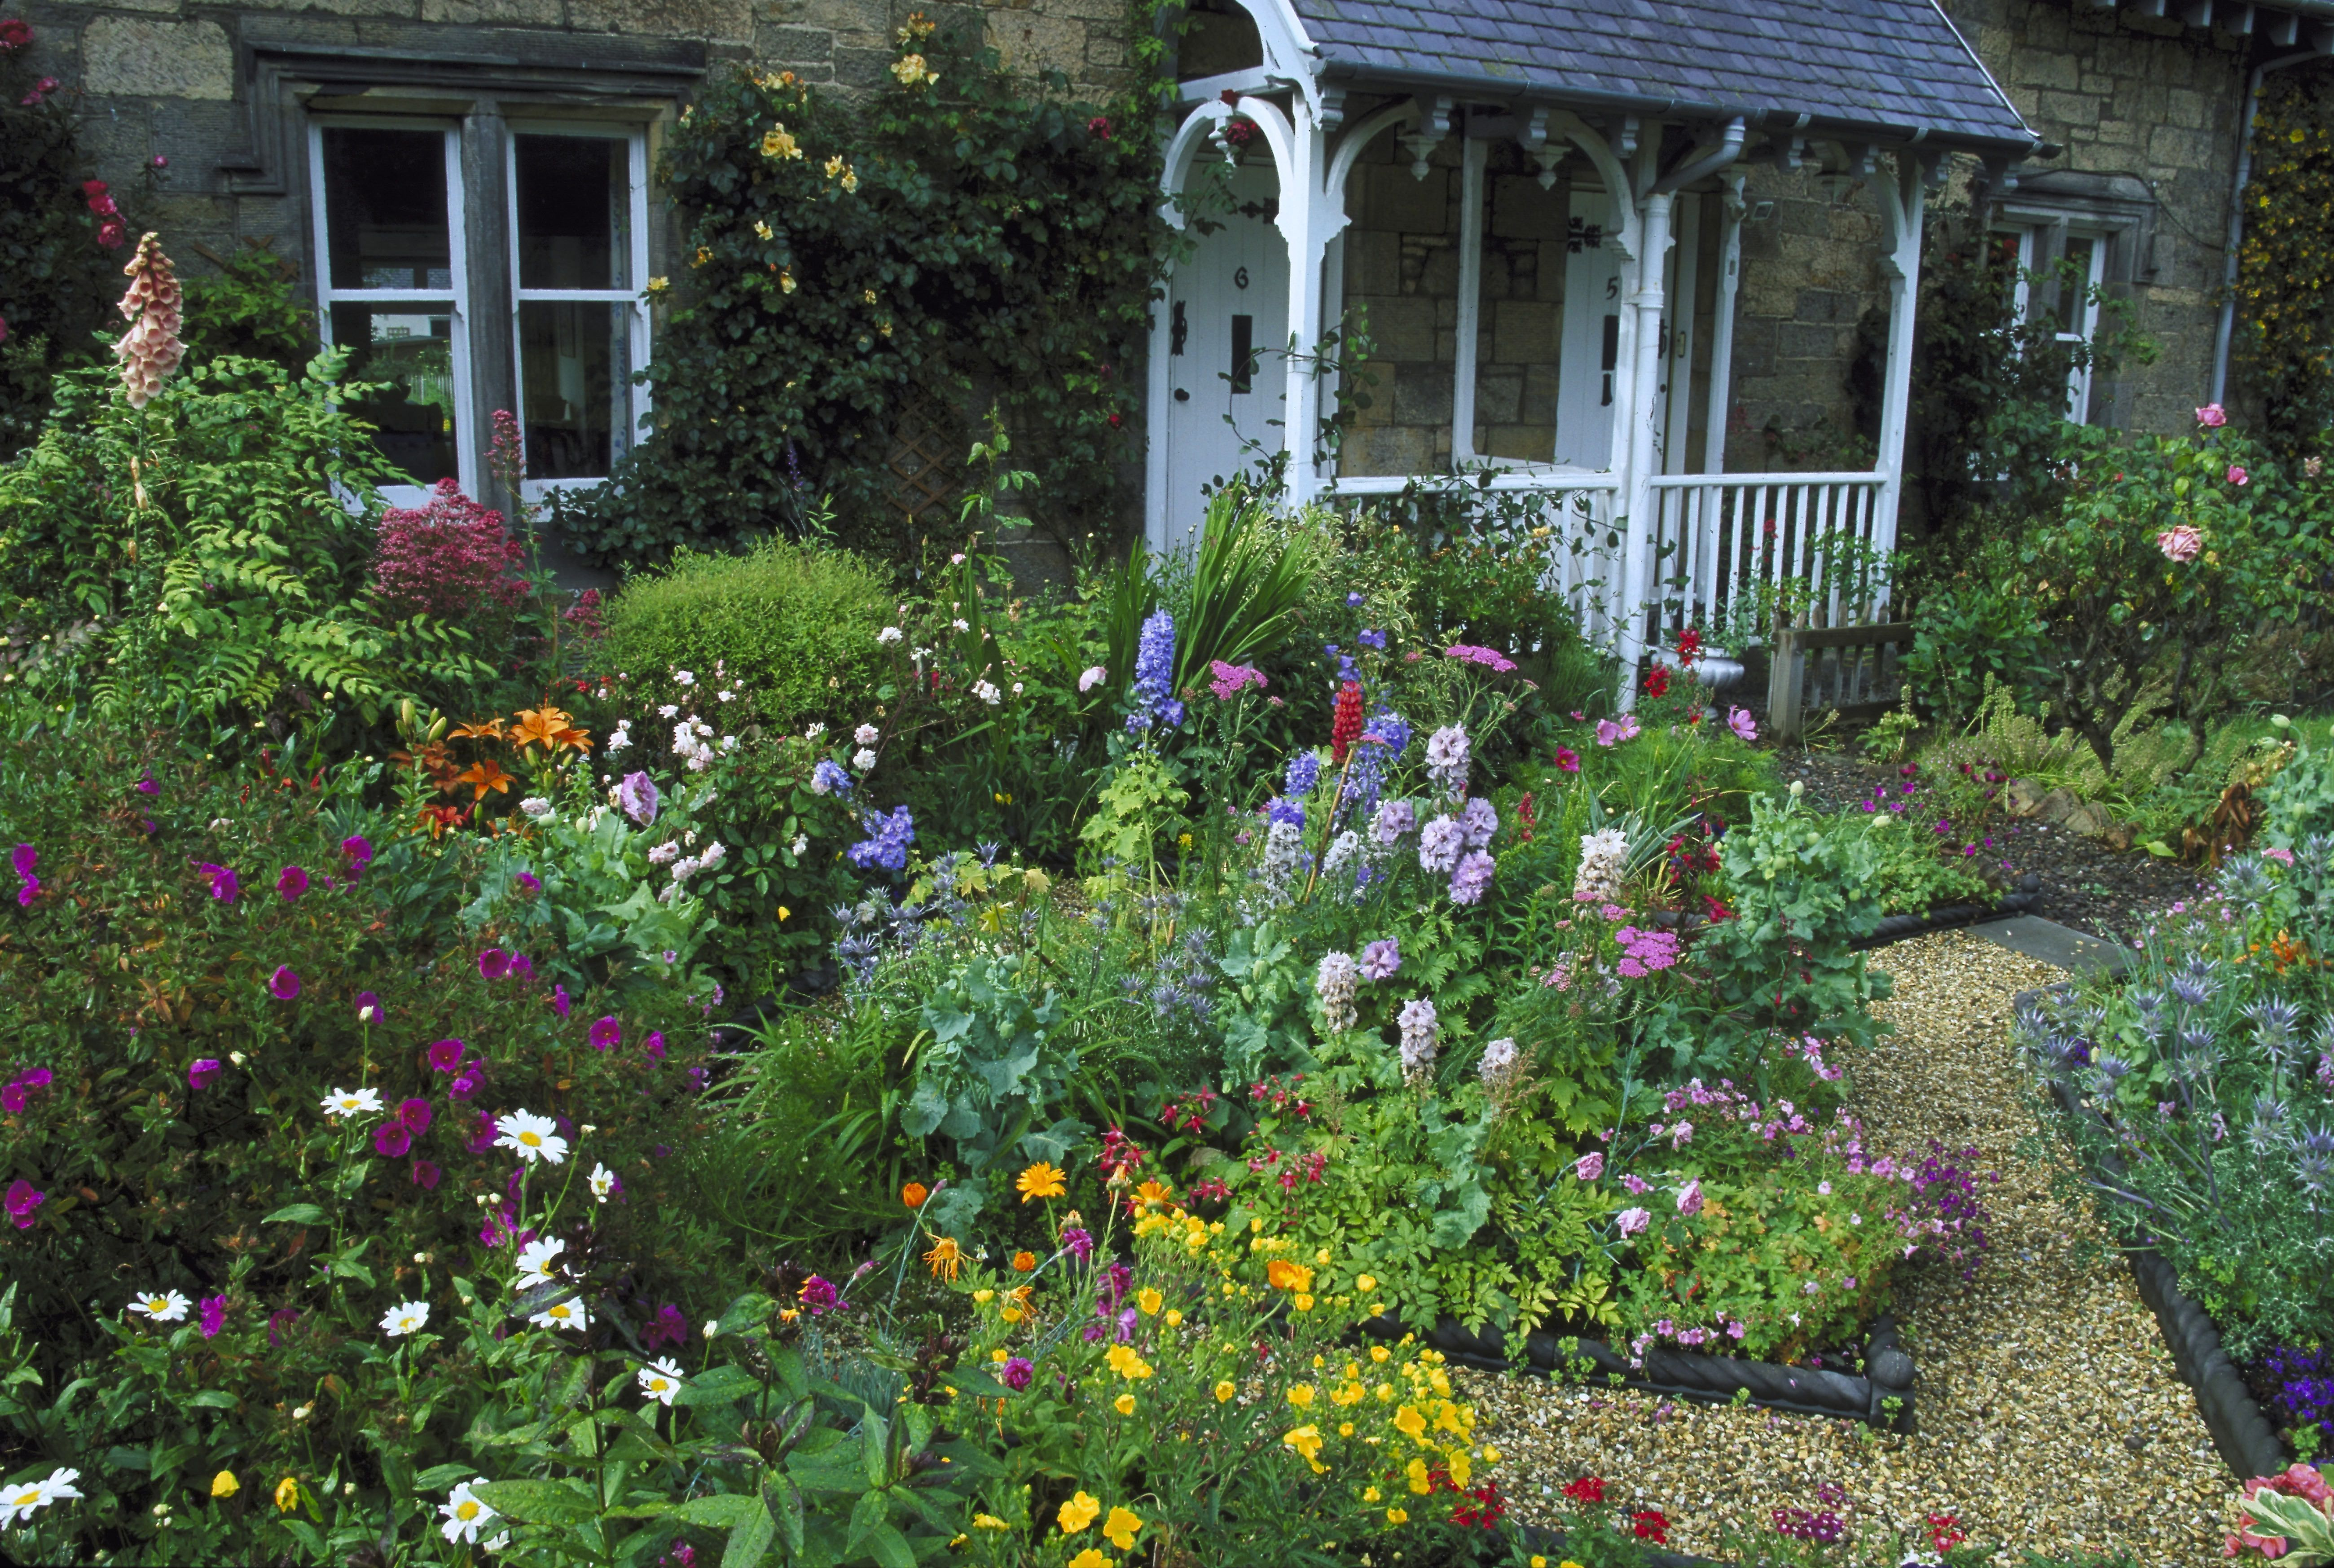 Front yard flower gardens - Flower Beds To Inspire Your Front Yard